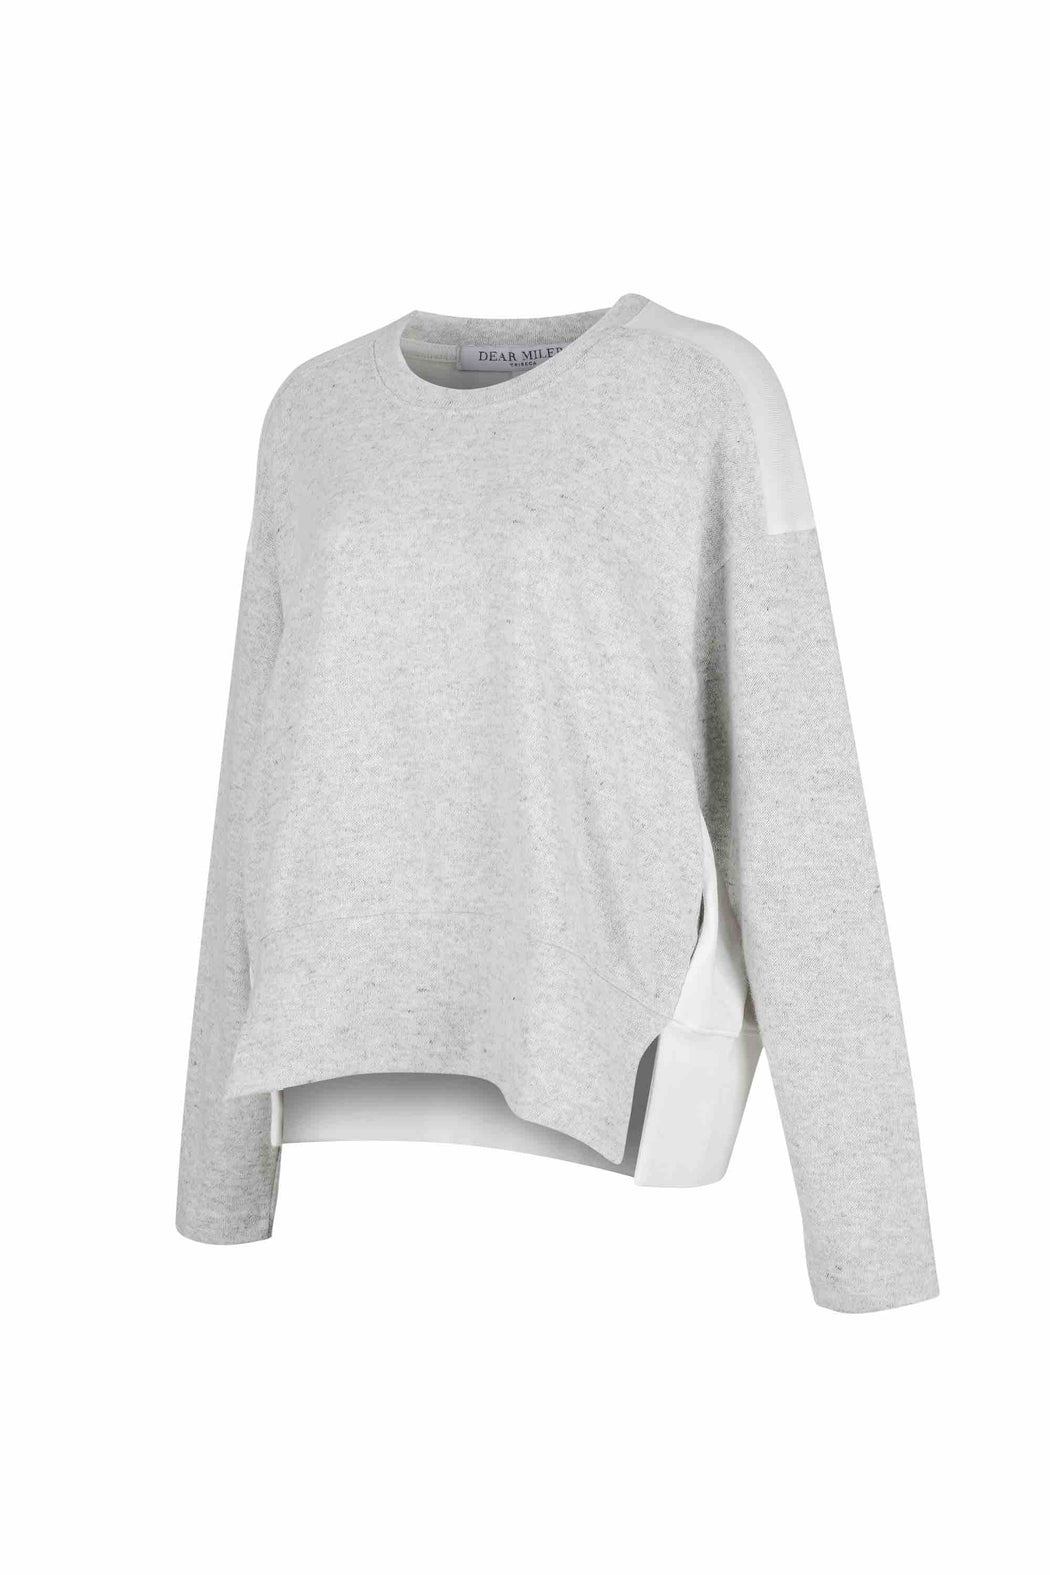 Side view of Women Fabric Block Sweater, made with Organic Cotton and wool blends in white/melange grey